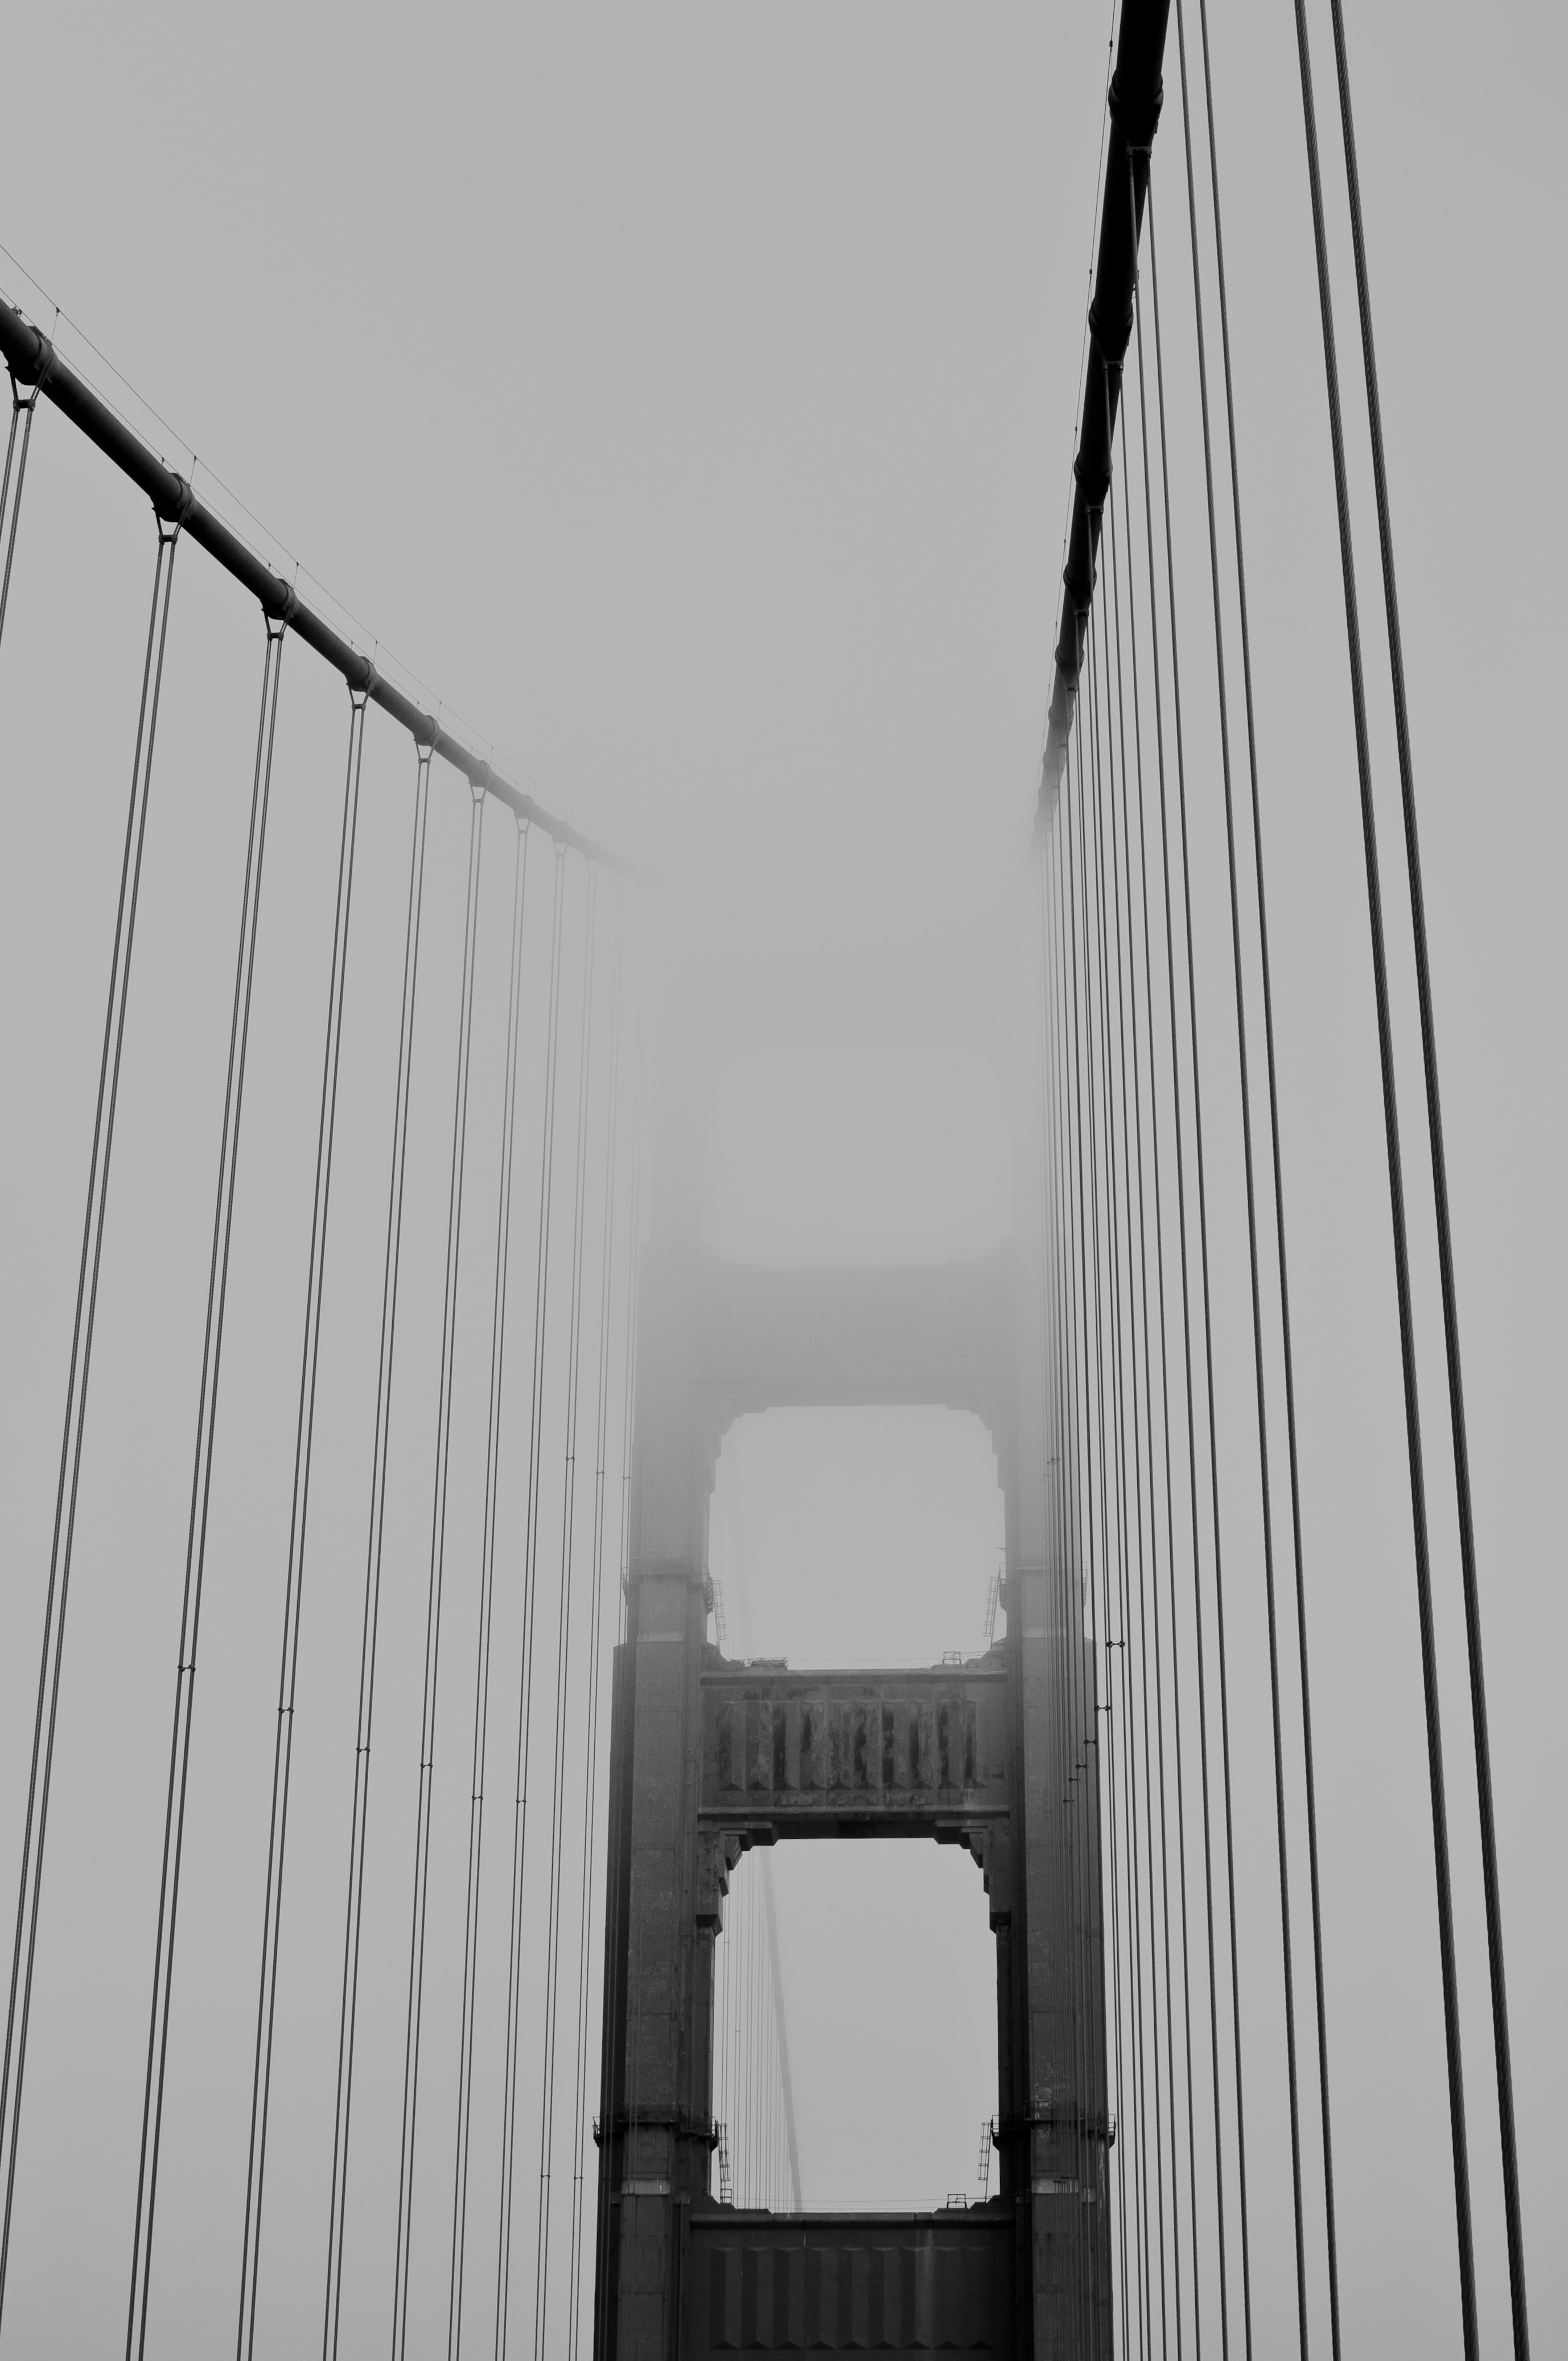 Bridge cables of Golden Gate hidden in fog